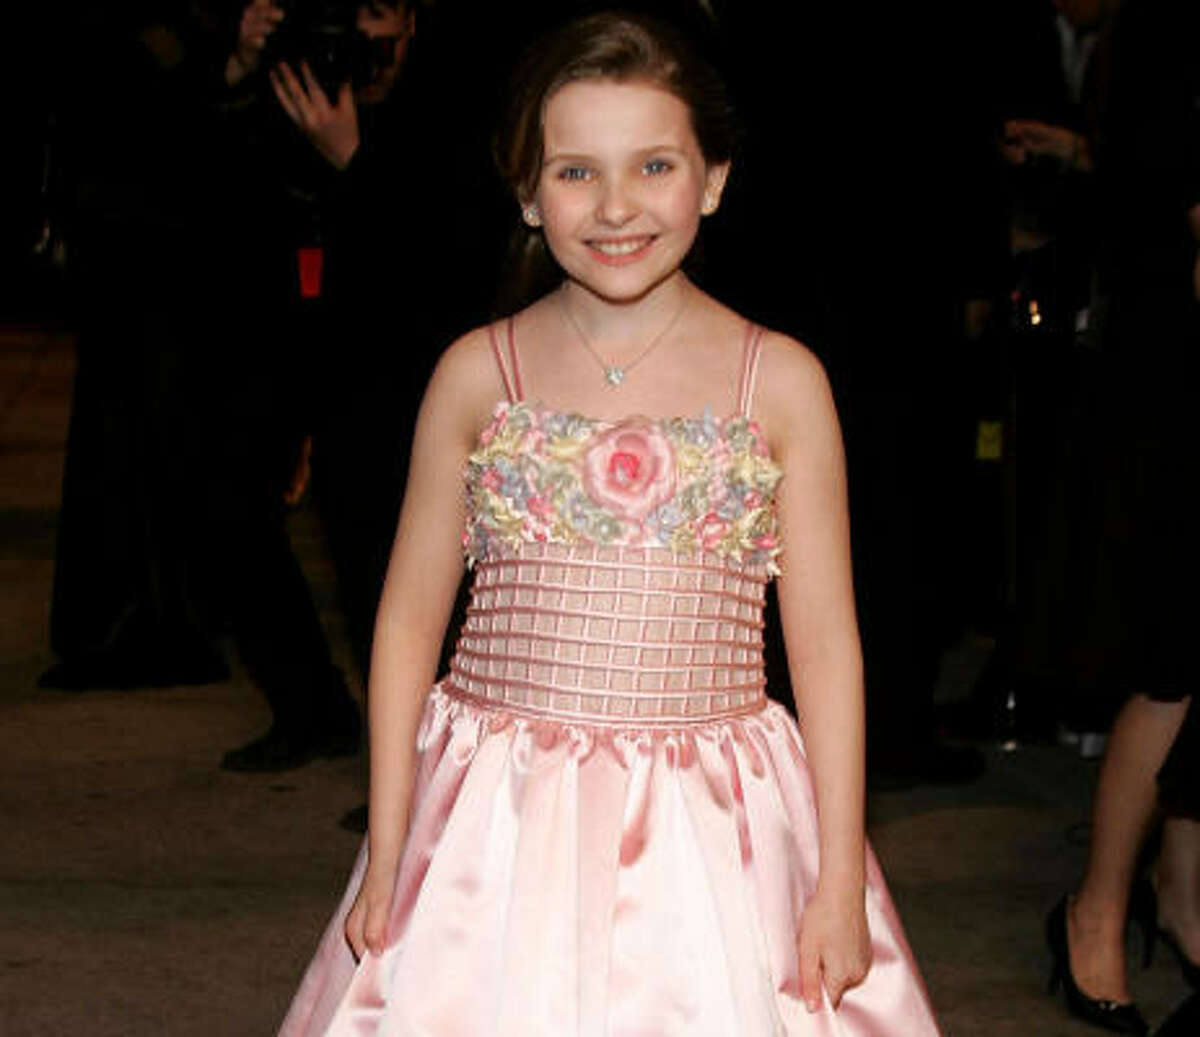 Abigail Breslin, 10, Best Supporting Actress nominee (Little Miss Sunshine, 2006)